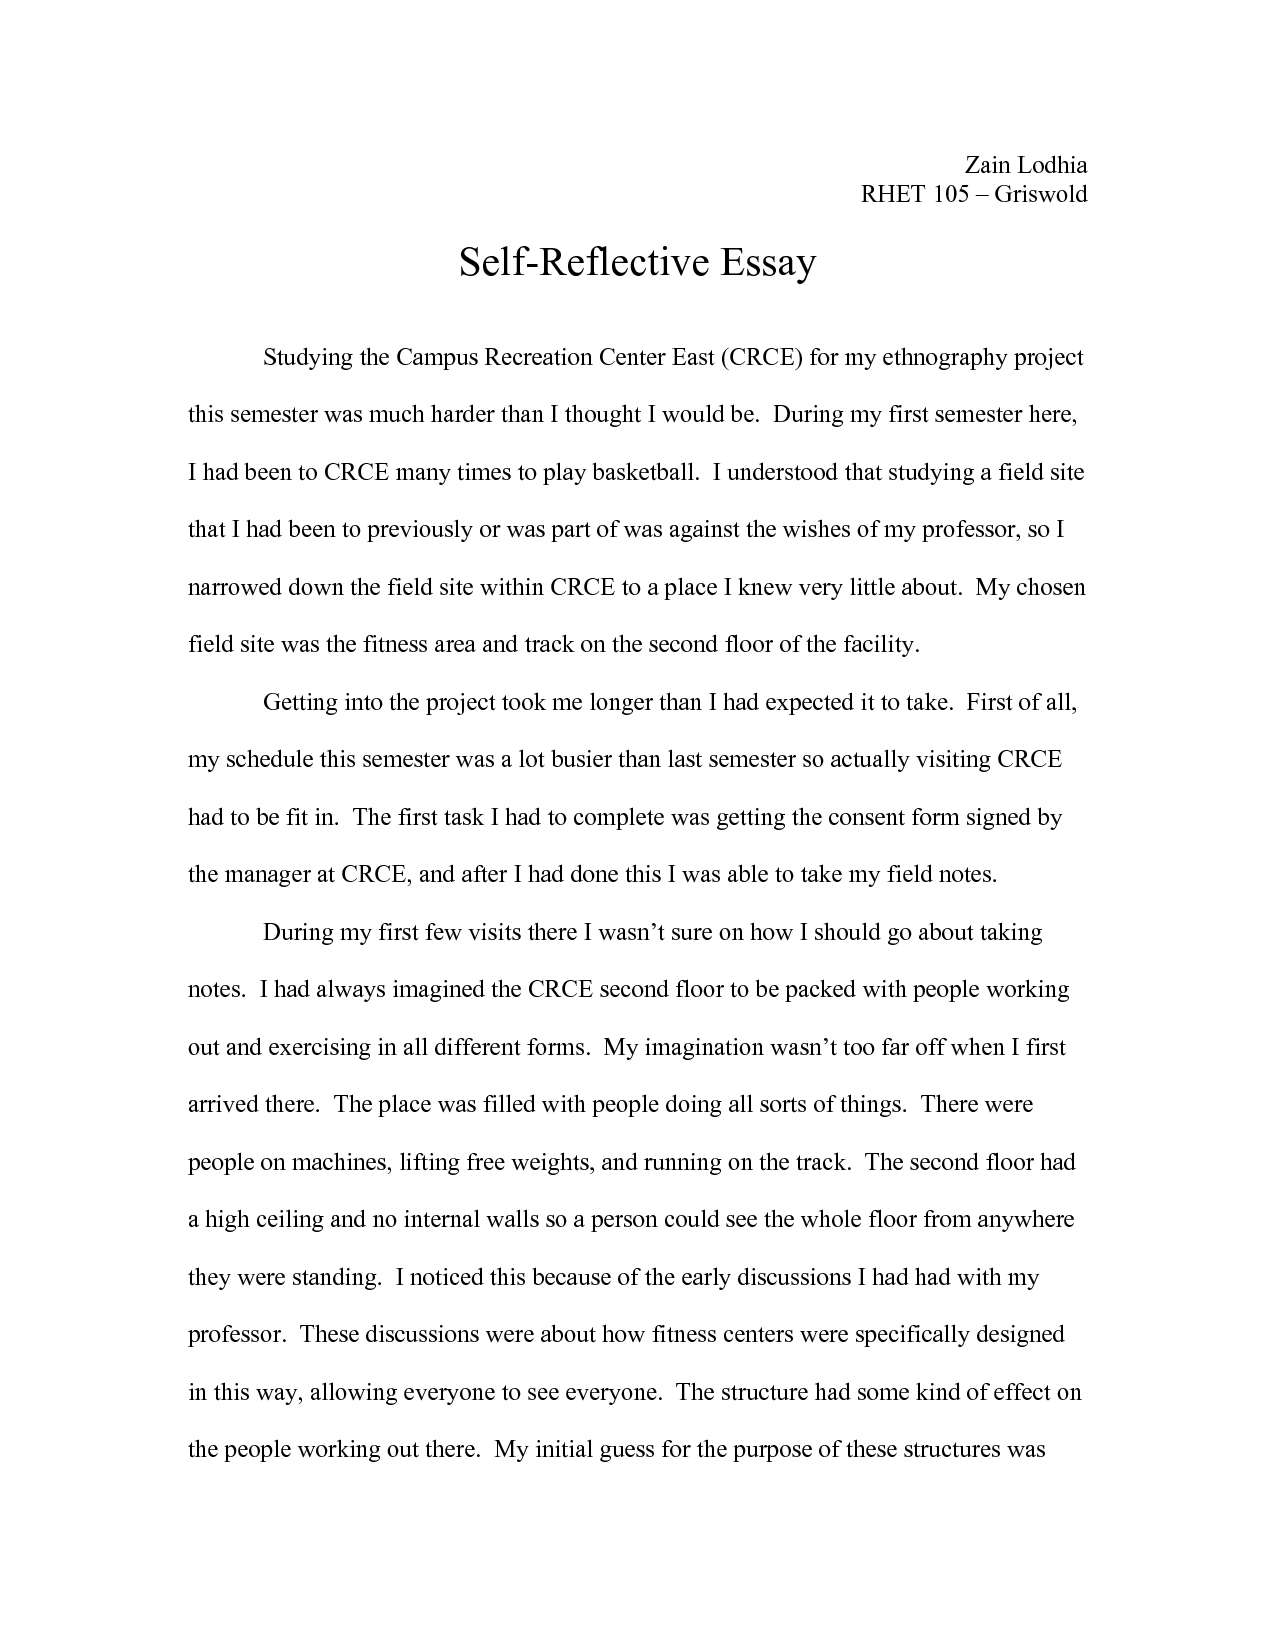 028 How To Write And Essay Qal0pwnf46 Unique An Paper In Apa Format Conclusion Mla Full